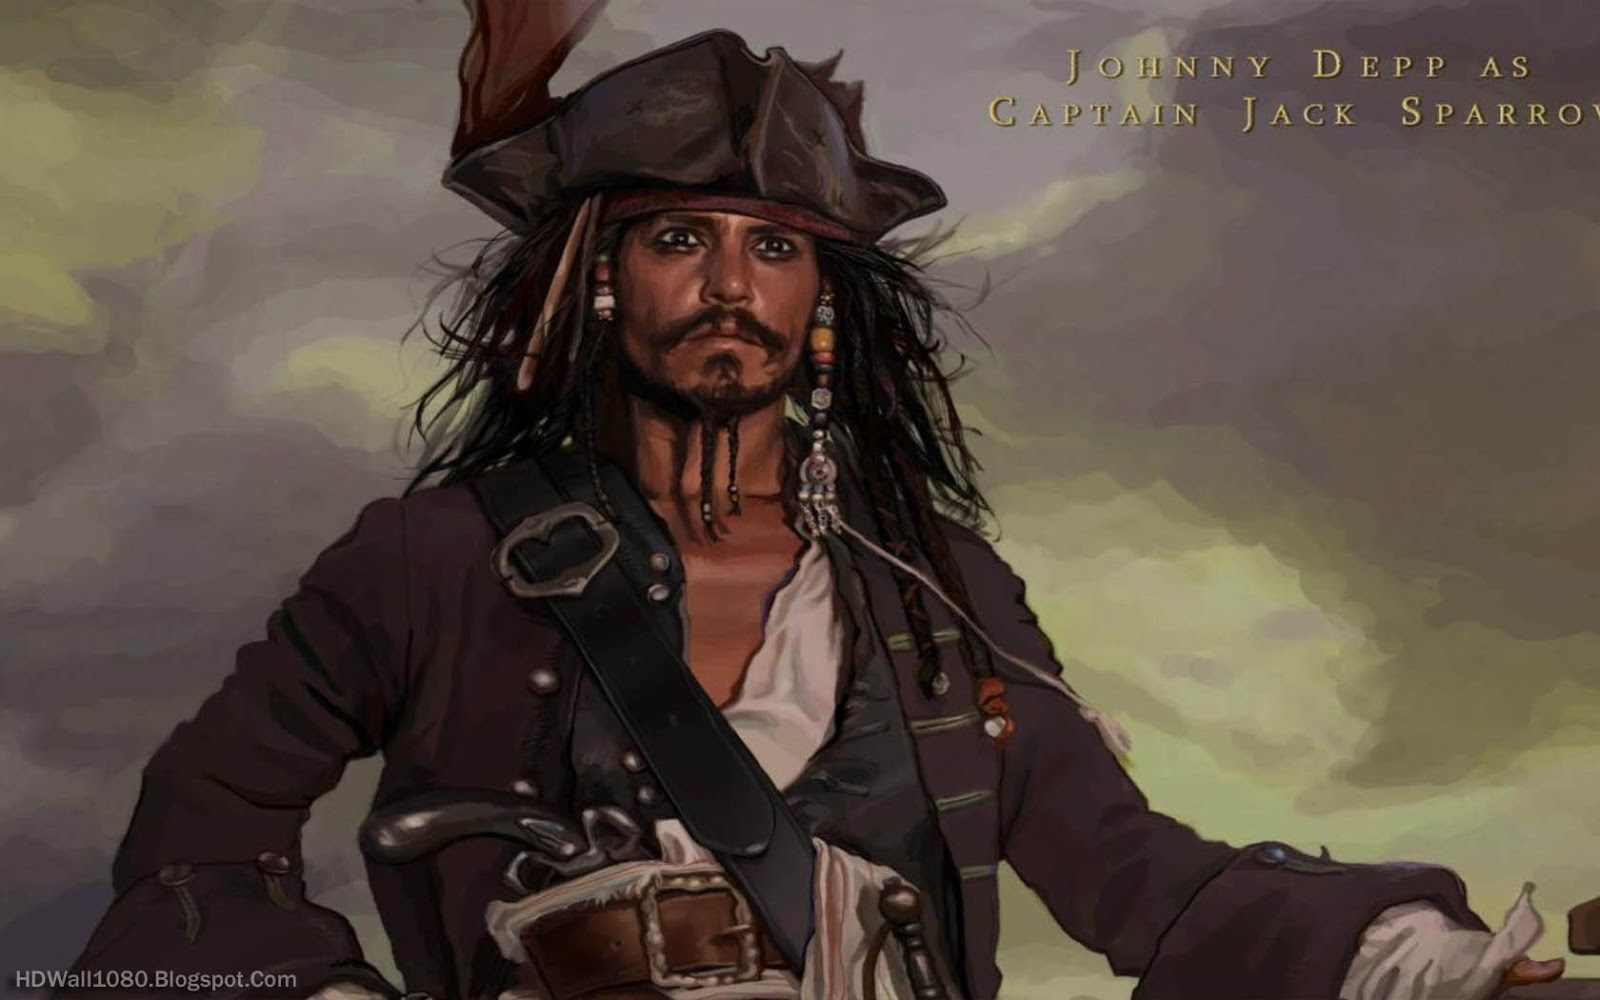 johnny depp as captain jack sparrow photos image and wallpapers